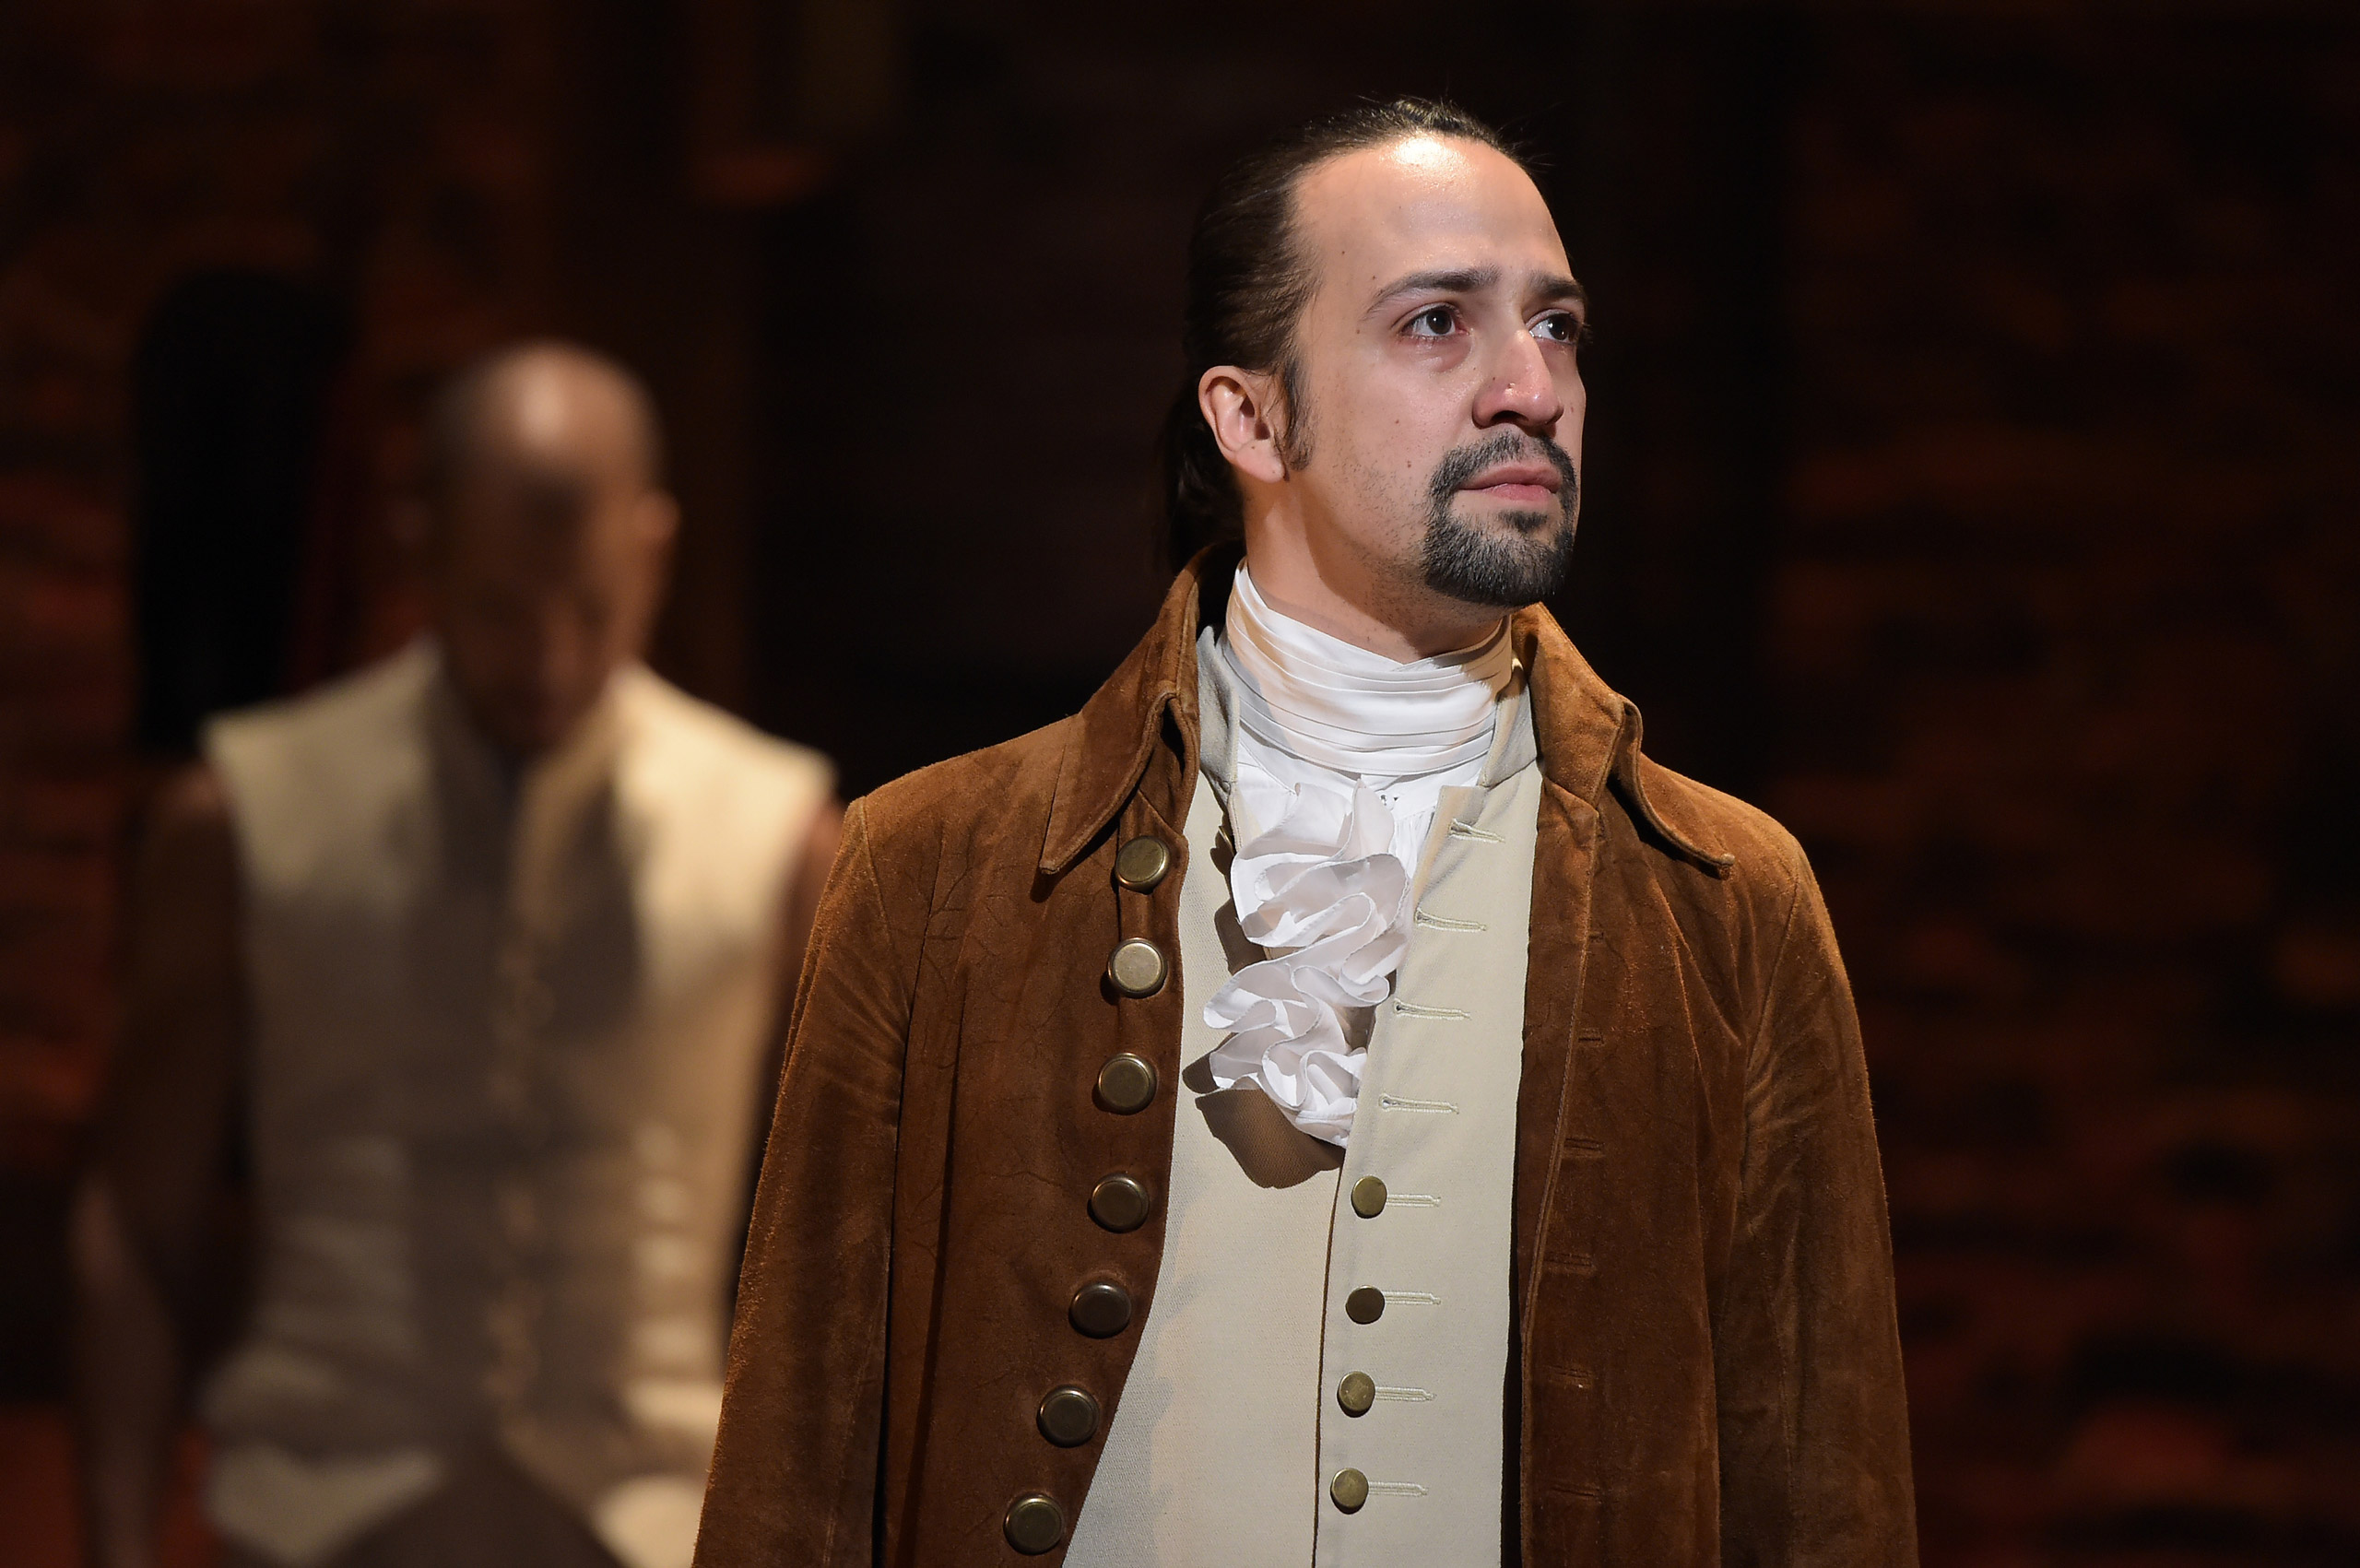 Actor, composer Lin-Manuel Miranda is seen on stage during the  Hamilton  performance for the 58th GRAMMY Awards in New York on Feb. 15, 2016.